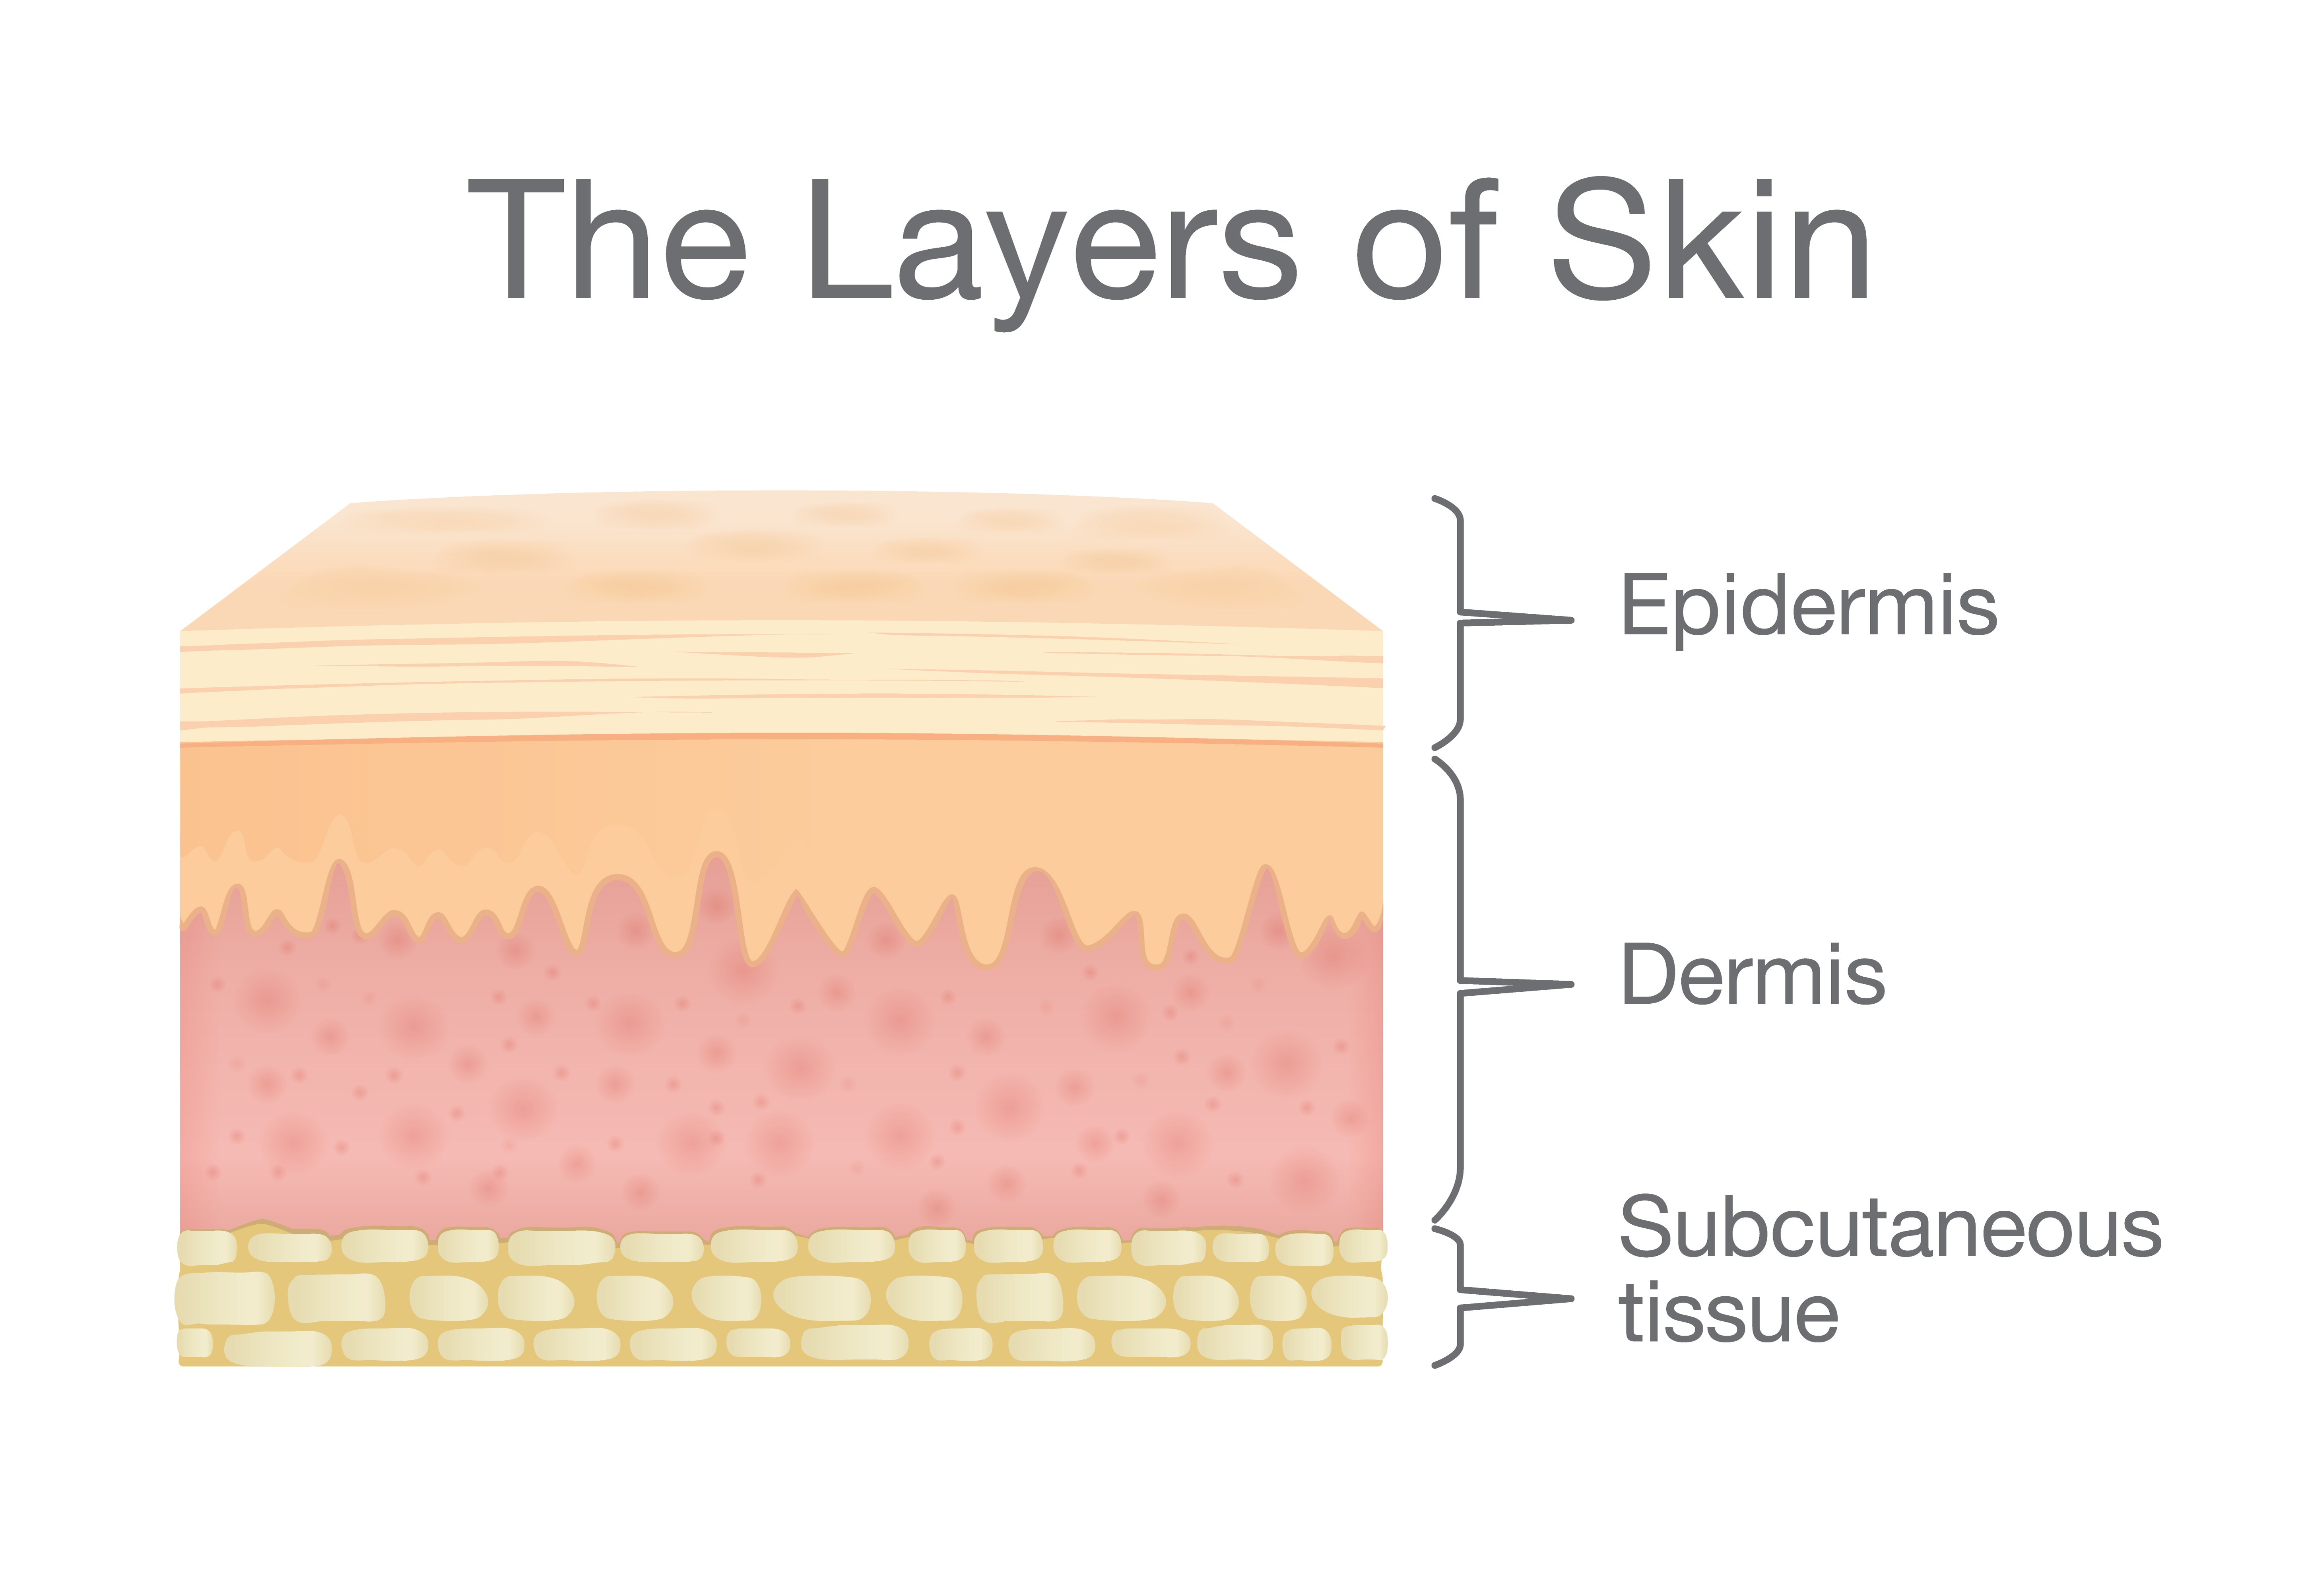 The Three Layers Of Skin And Their Functions